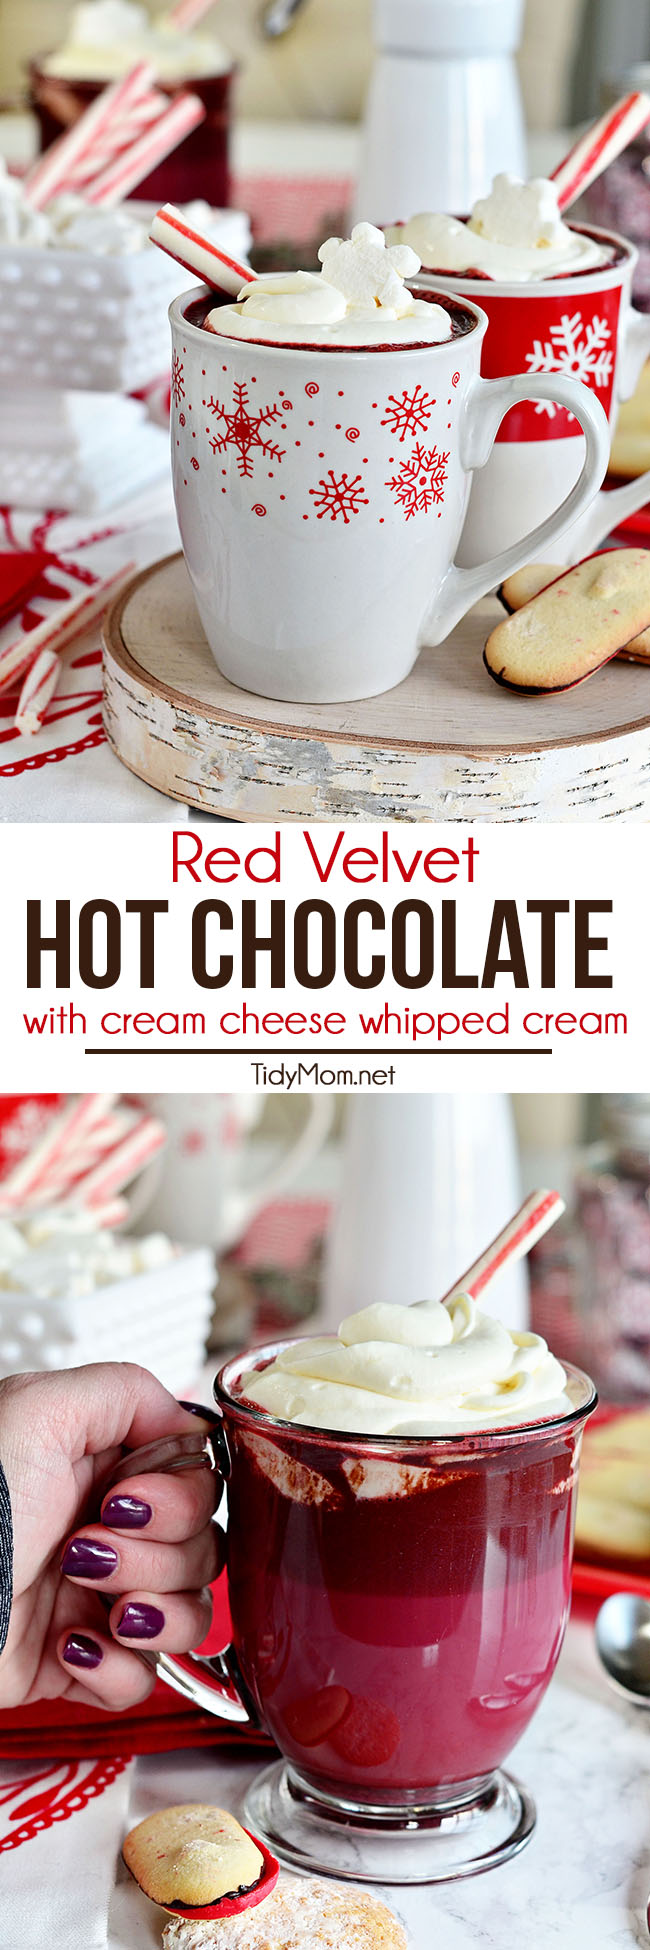 RED VELVET HOT CHOCOLATE is perfectly creamy, velvety and sweet, with a rich flavor. The cream cheese whipped cream on top really sets it this recipe apart. It meets your lips with a distinctively warm, round, sweet note of vanilla along with a sweet tangy surprise in every sip. Print the full recipe + watch recipe video at TidyMom.net #redvelvet #hotchocoalte  via @tidymom